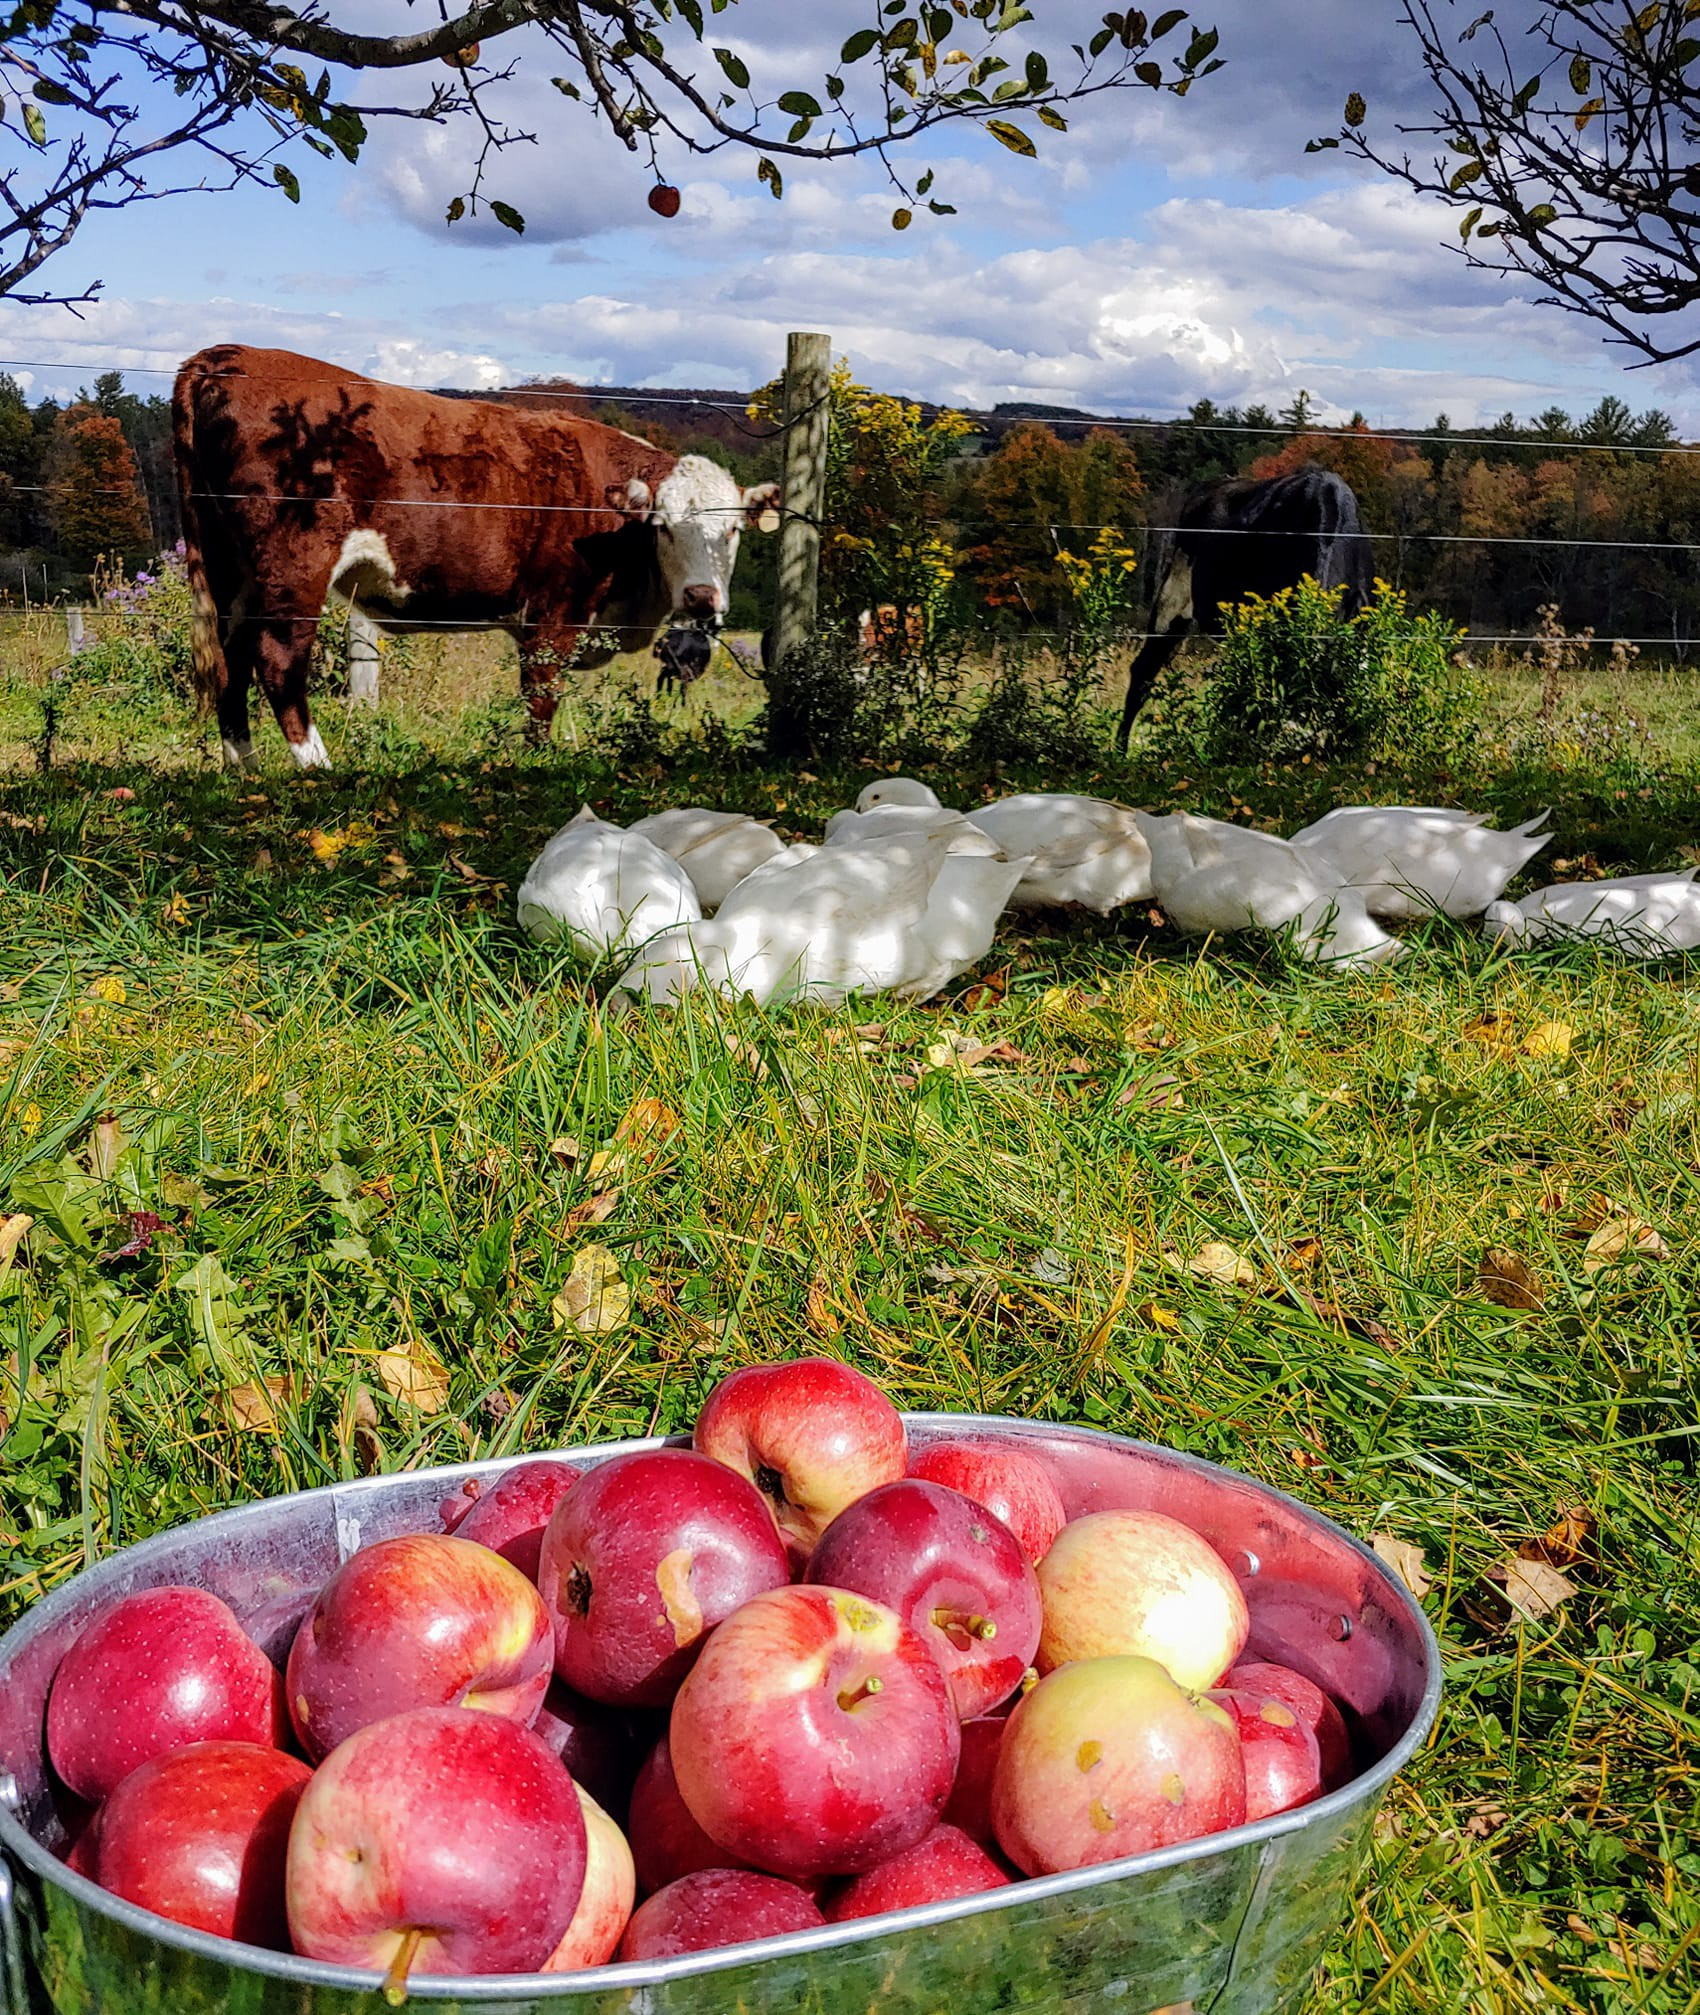 Bin full of apples in front of ducks and cows on a homestead